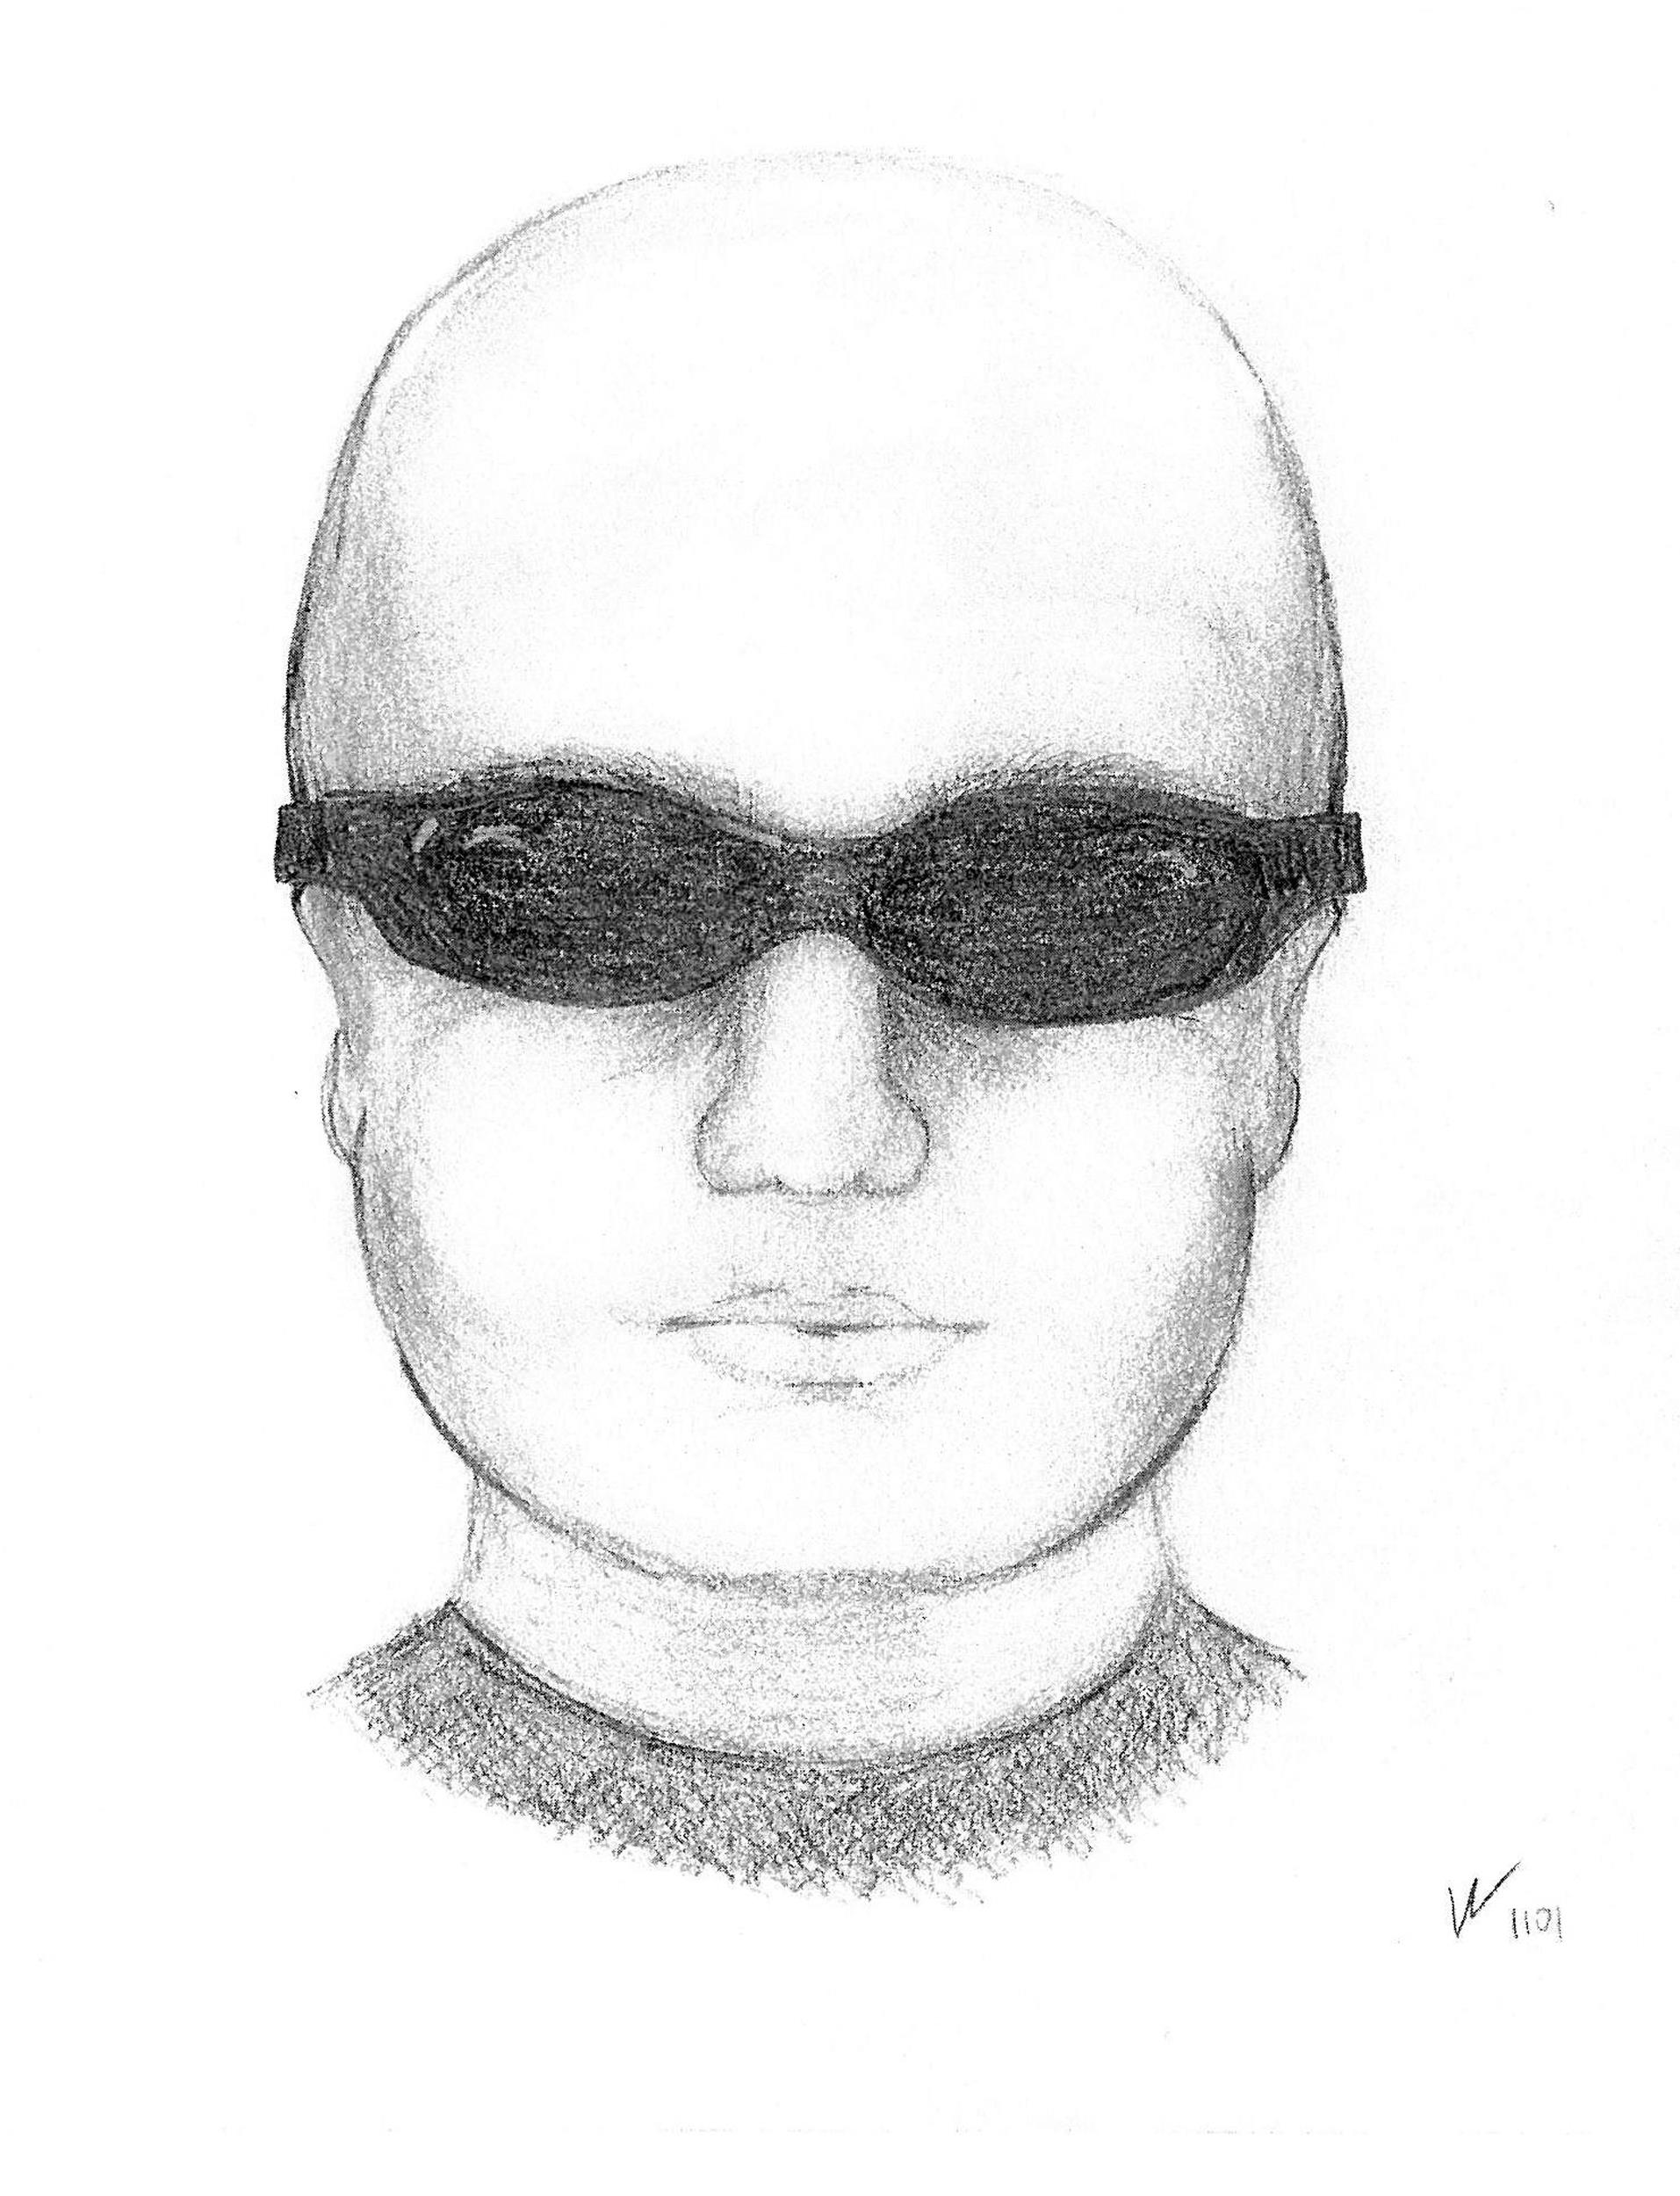 Fbi Releases Sketch Of Person Of Interest In Colorado